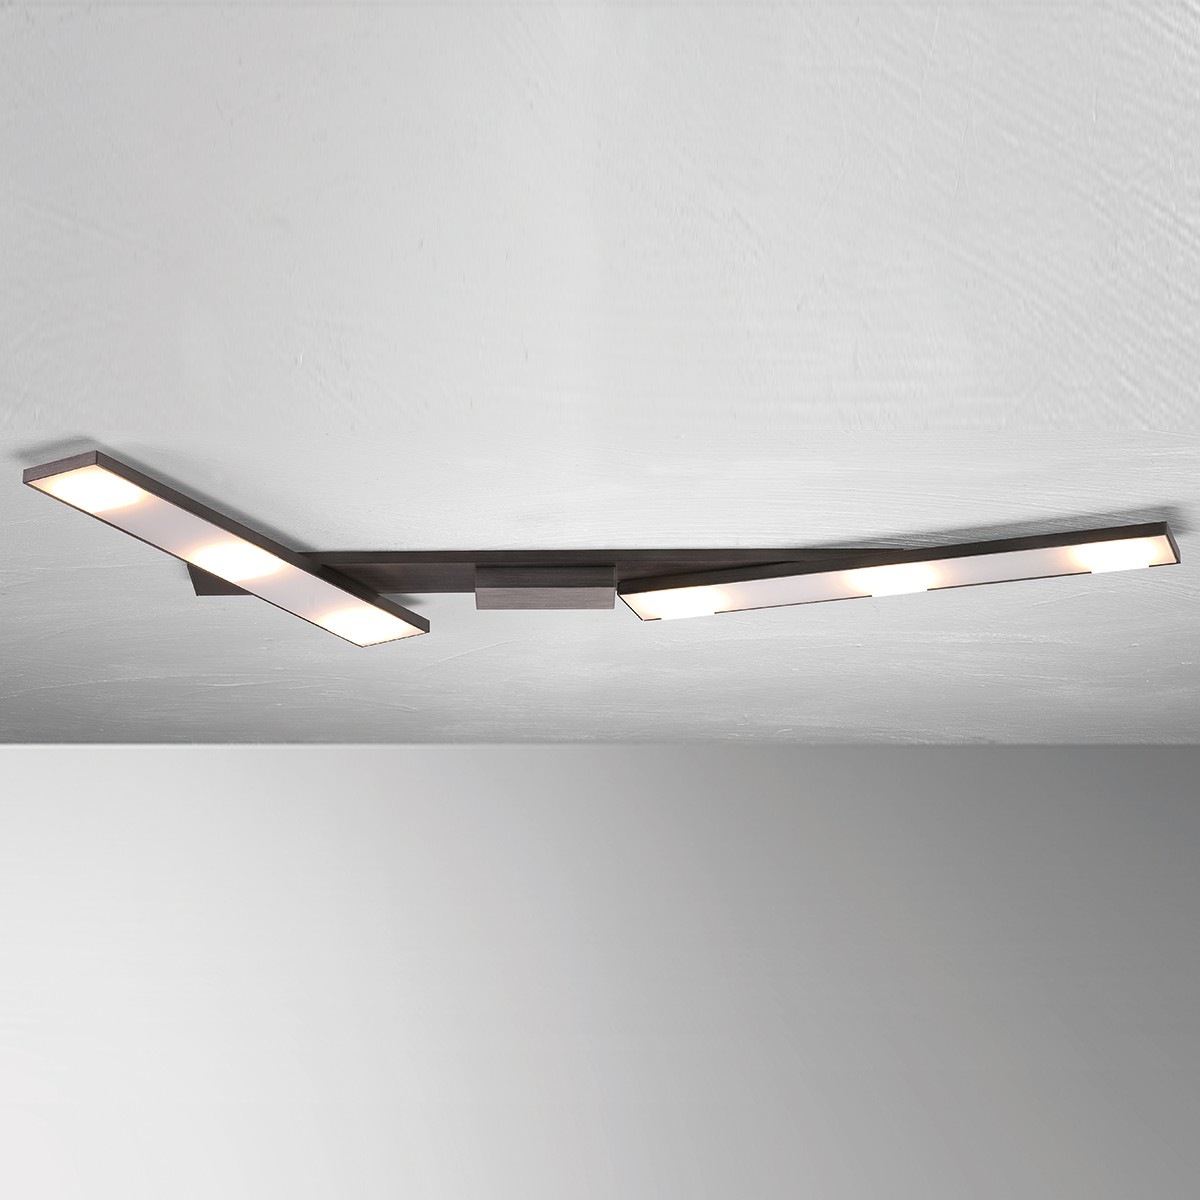 Bopp Slight LED Deckenleuchte, Länge: 115 cm, anthrazit